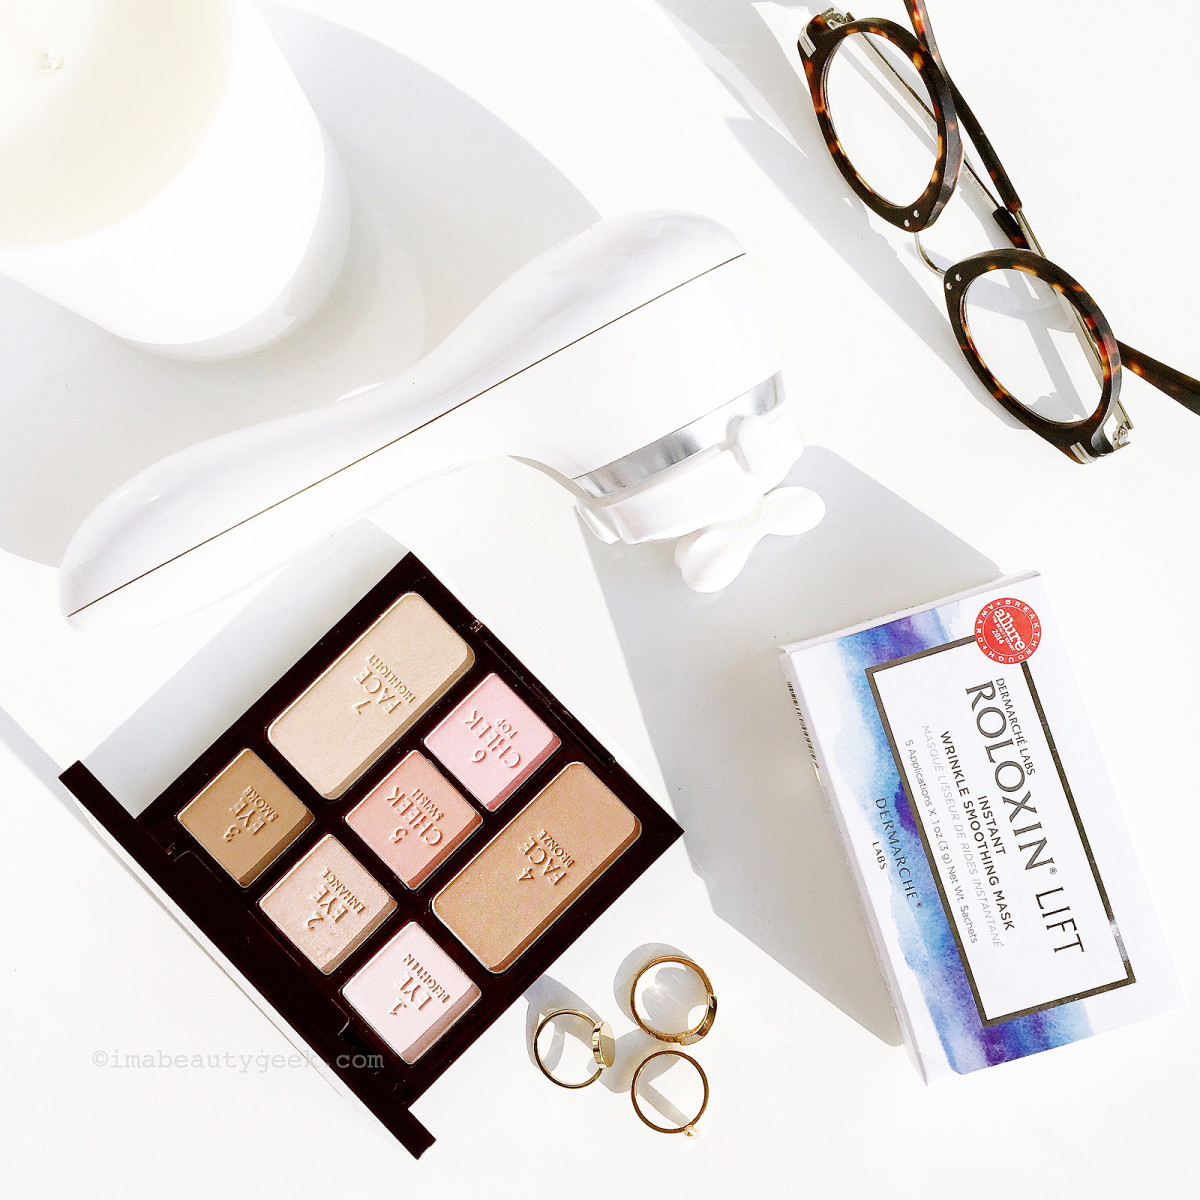 Three beauty items I'd give EVERYONE if I could: Clarisonic Uplift w Facial Massage attachment, Dermarche Labs Roloxin Lift masks and Charlotte Tilbury Natural Beauty palette